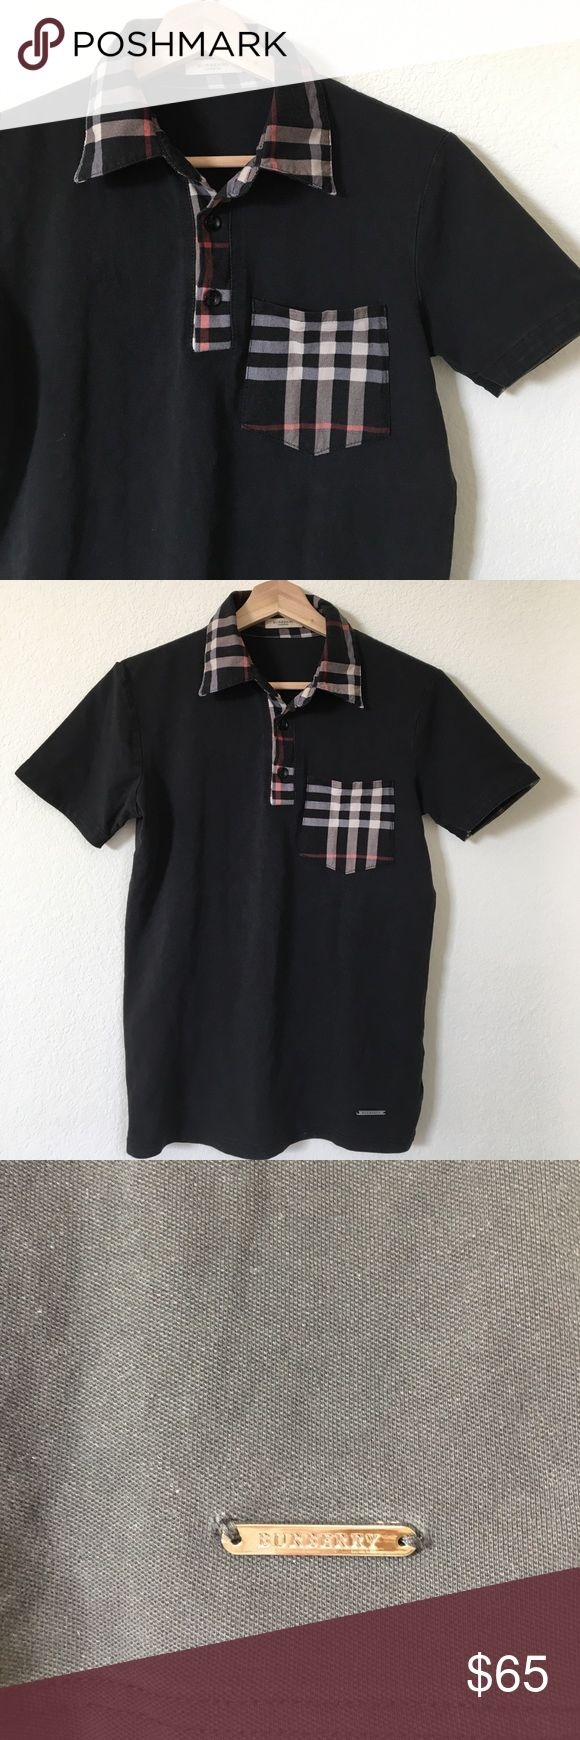 "{ Burberry } polo shirt Burberry polo shirt black with signature plaid accents (pocket, collar, inner sleeve and neck edge lining), 3 button down, Burberry logo charm on lower front side, previously worn and shows normal wash and wear to it including color fade; overall in good condition. 100% cotton very comfy. Measures laying flat approx pit to pit 18"" mid shoulder down 24"" Burberry Shirts & Tops Tees - Short Sleeve"